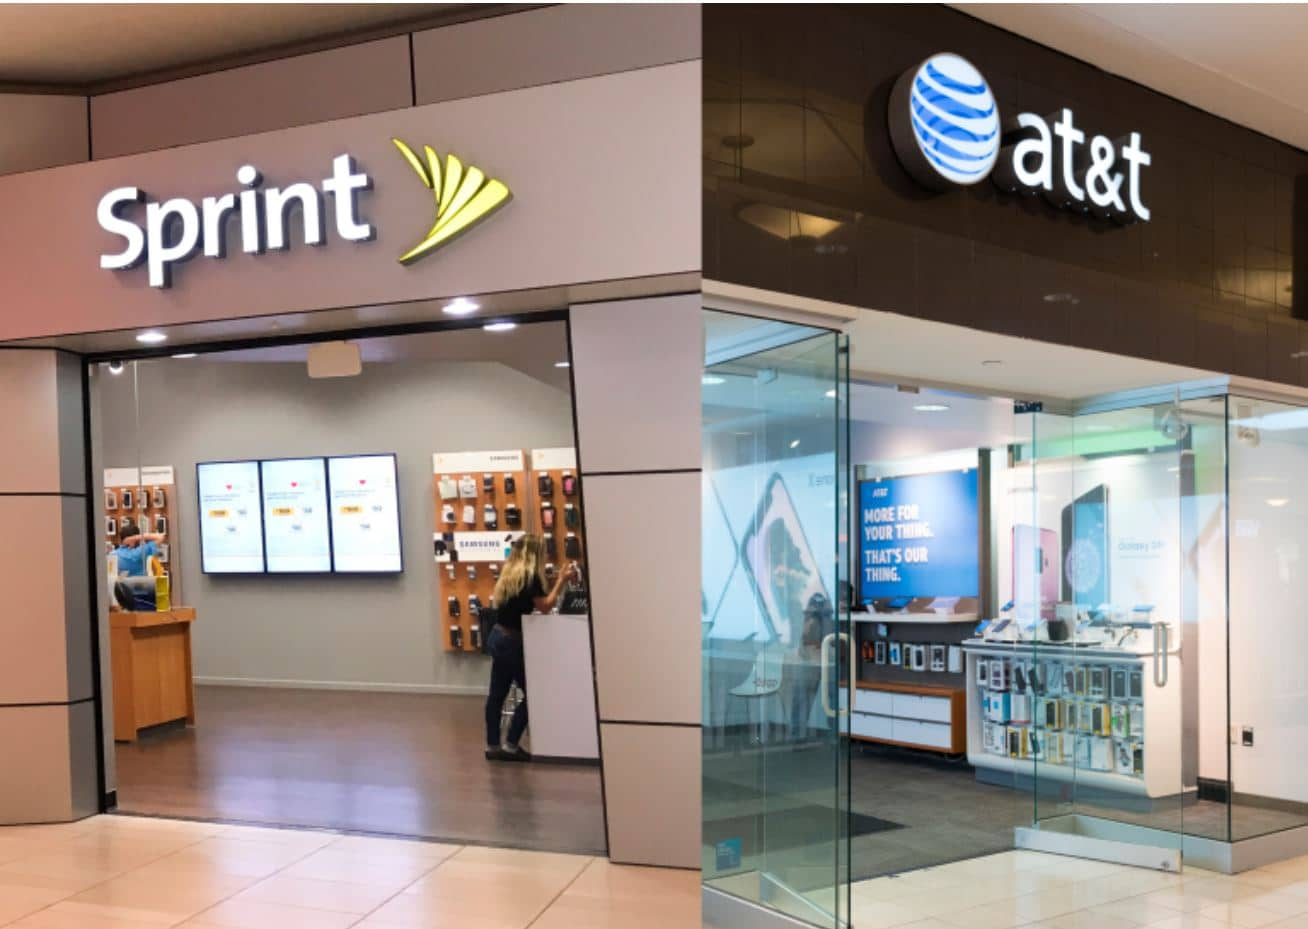 Breaking: Sprint Sues AT&T for 5G Marketing Practices